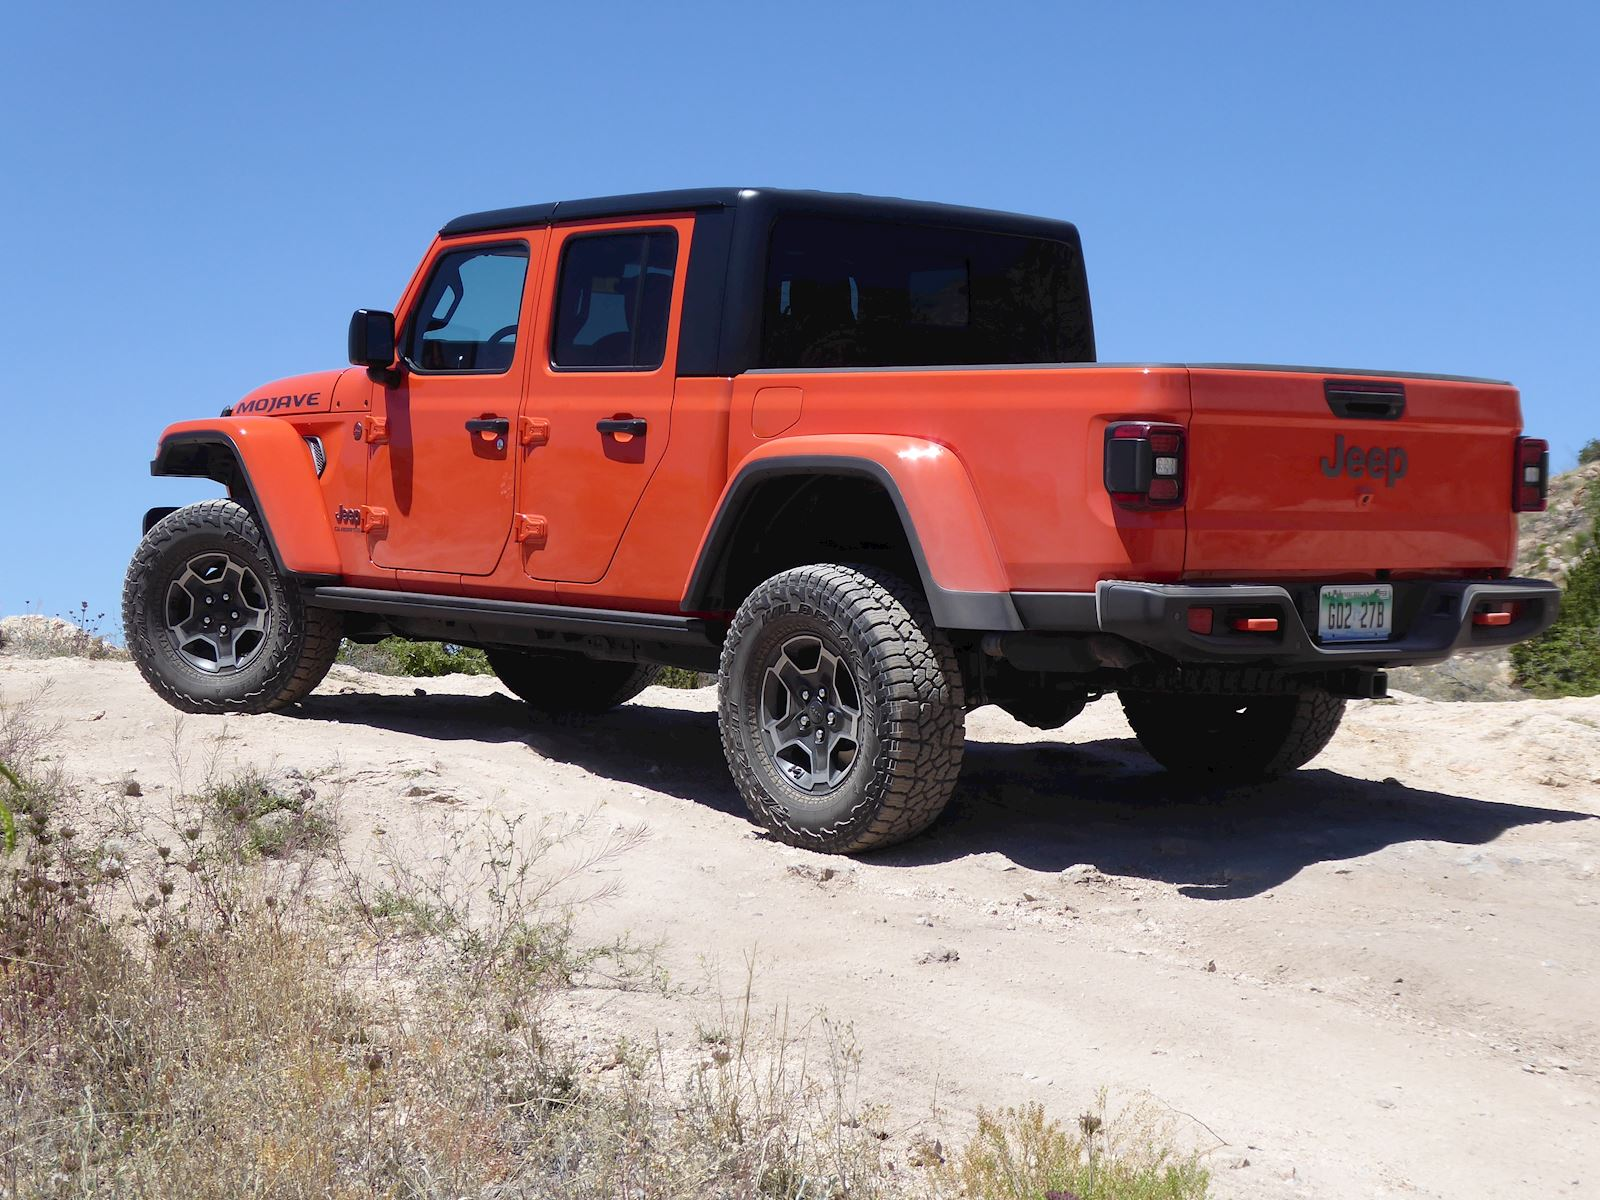 2020 Jeep Gladiator Mojave rear view